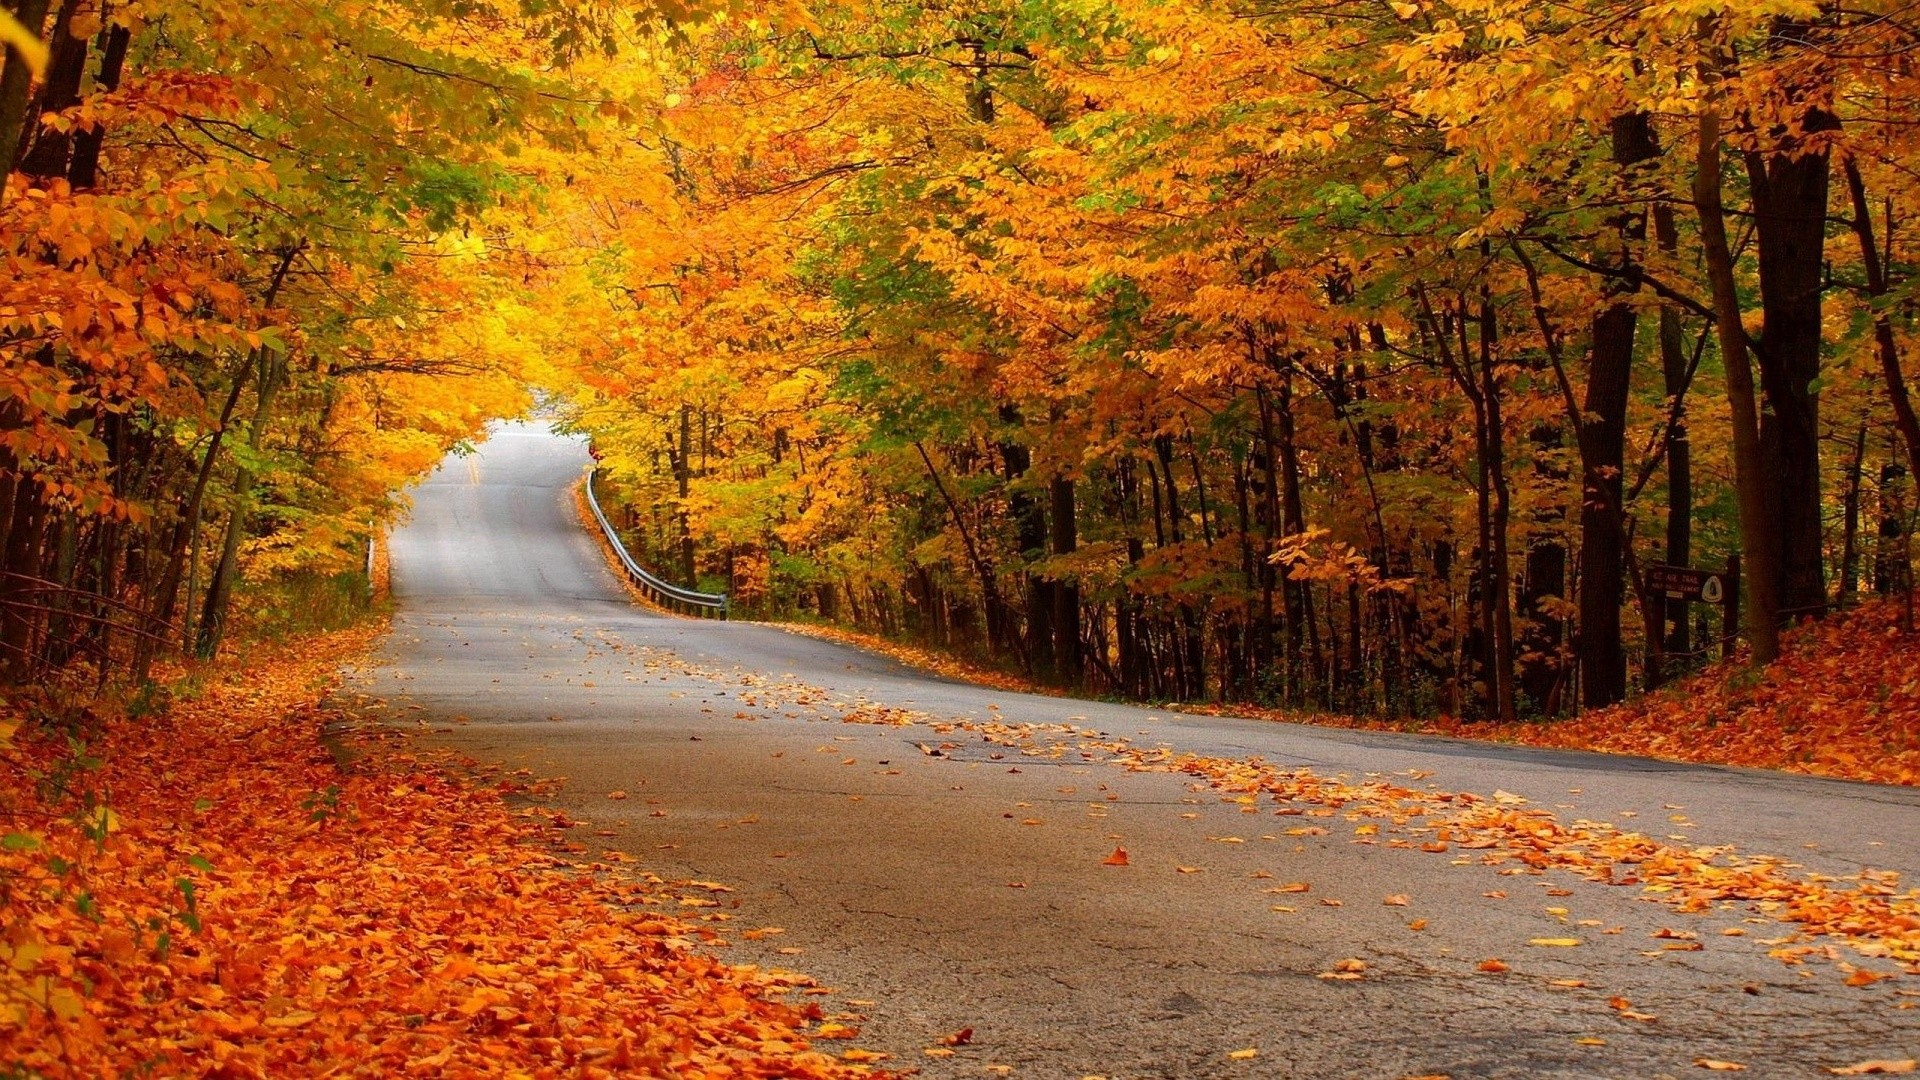 1920x1080 0 1920x1080 Autumn Forest Scenery Wallpaper 1920x1080 Autumn Forest Street Wallpaper